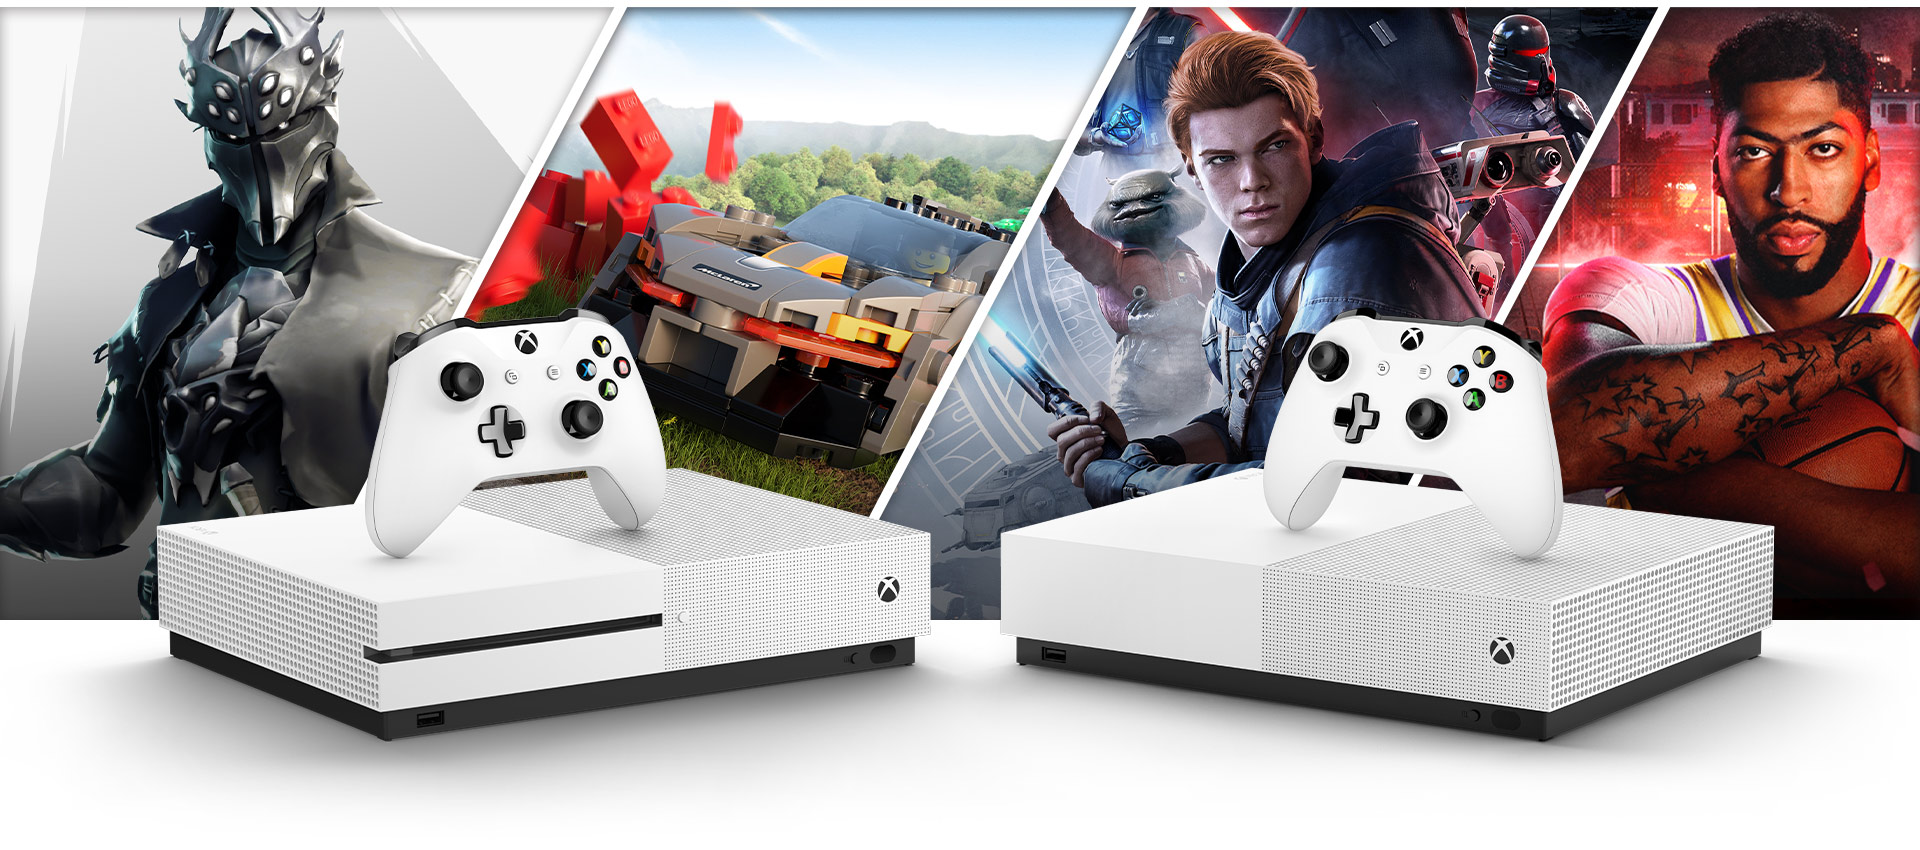 Xbox One S ve Xbox One S All Digital Edition arkasında yer alan Fortnite, Forza Horizon 4, Star Wars Jedi Fallen Order ve NBA 2K20 grafikleri